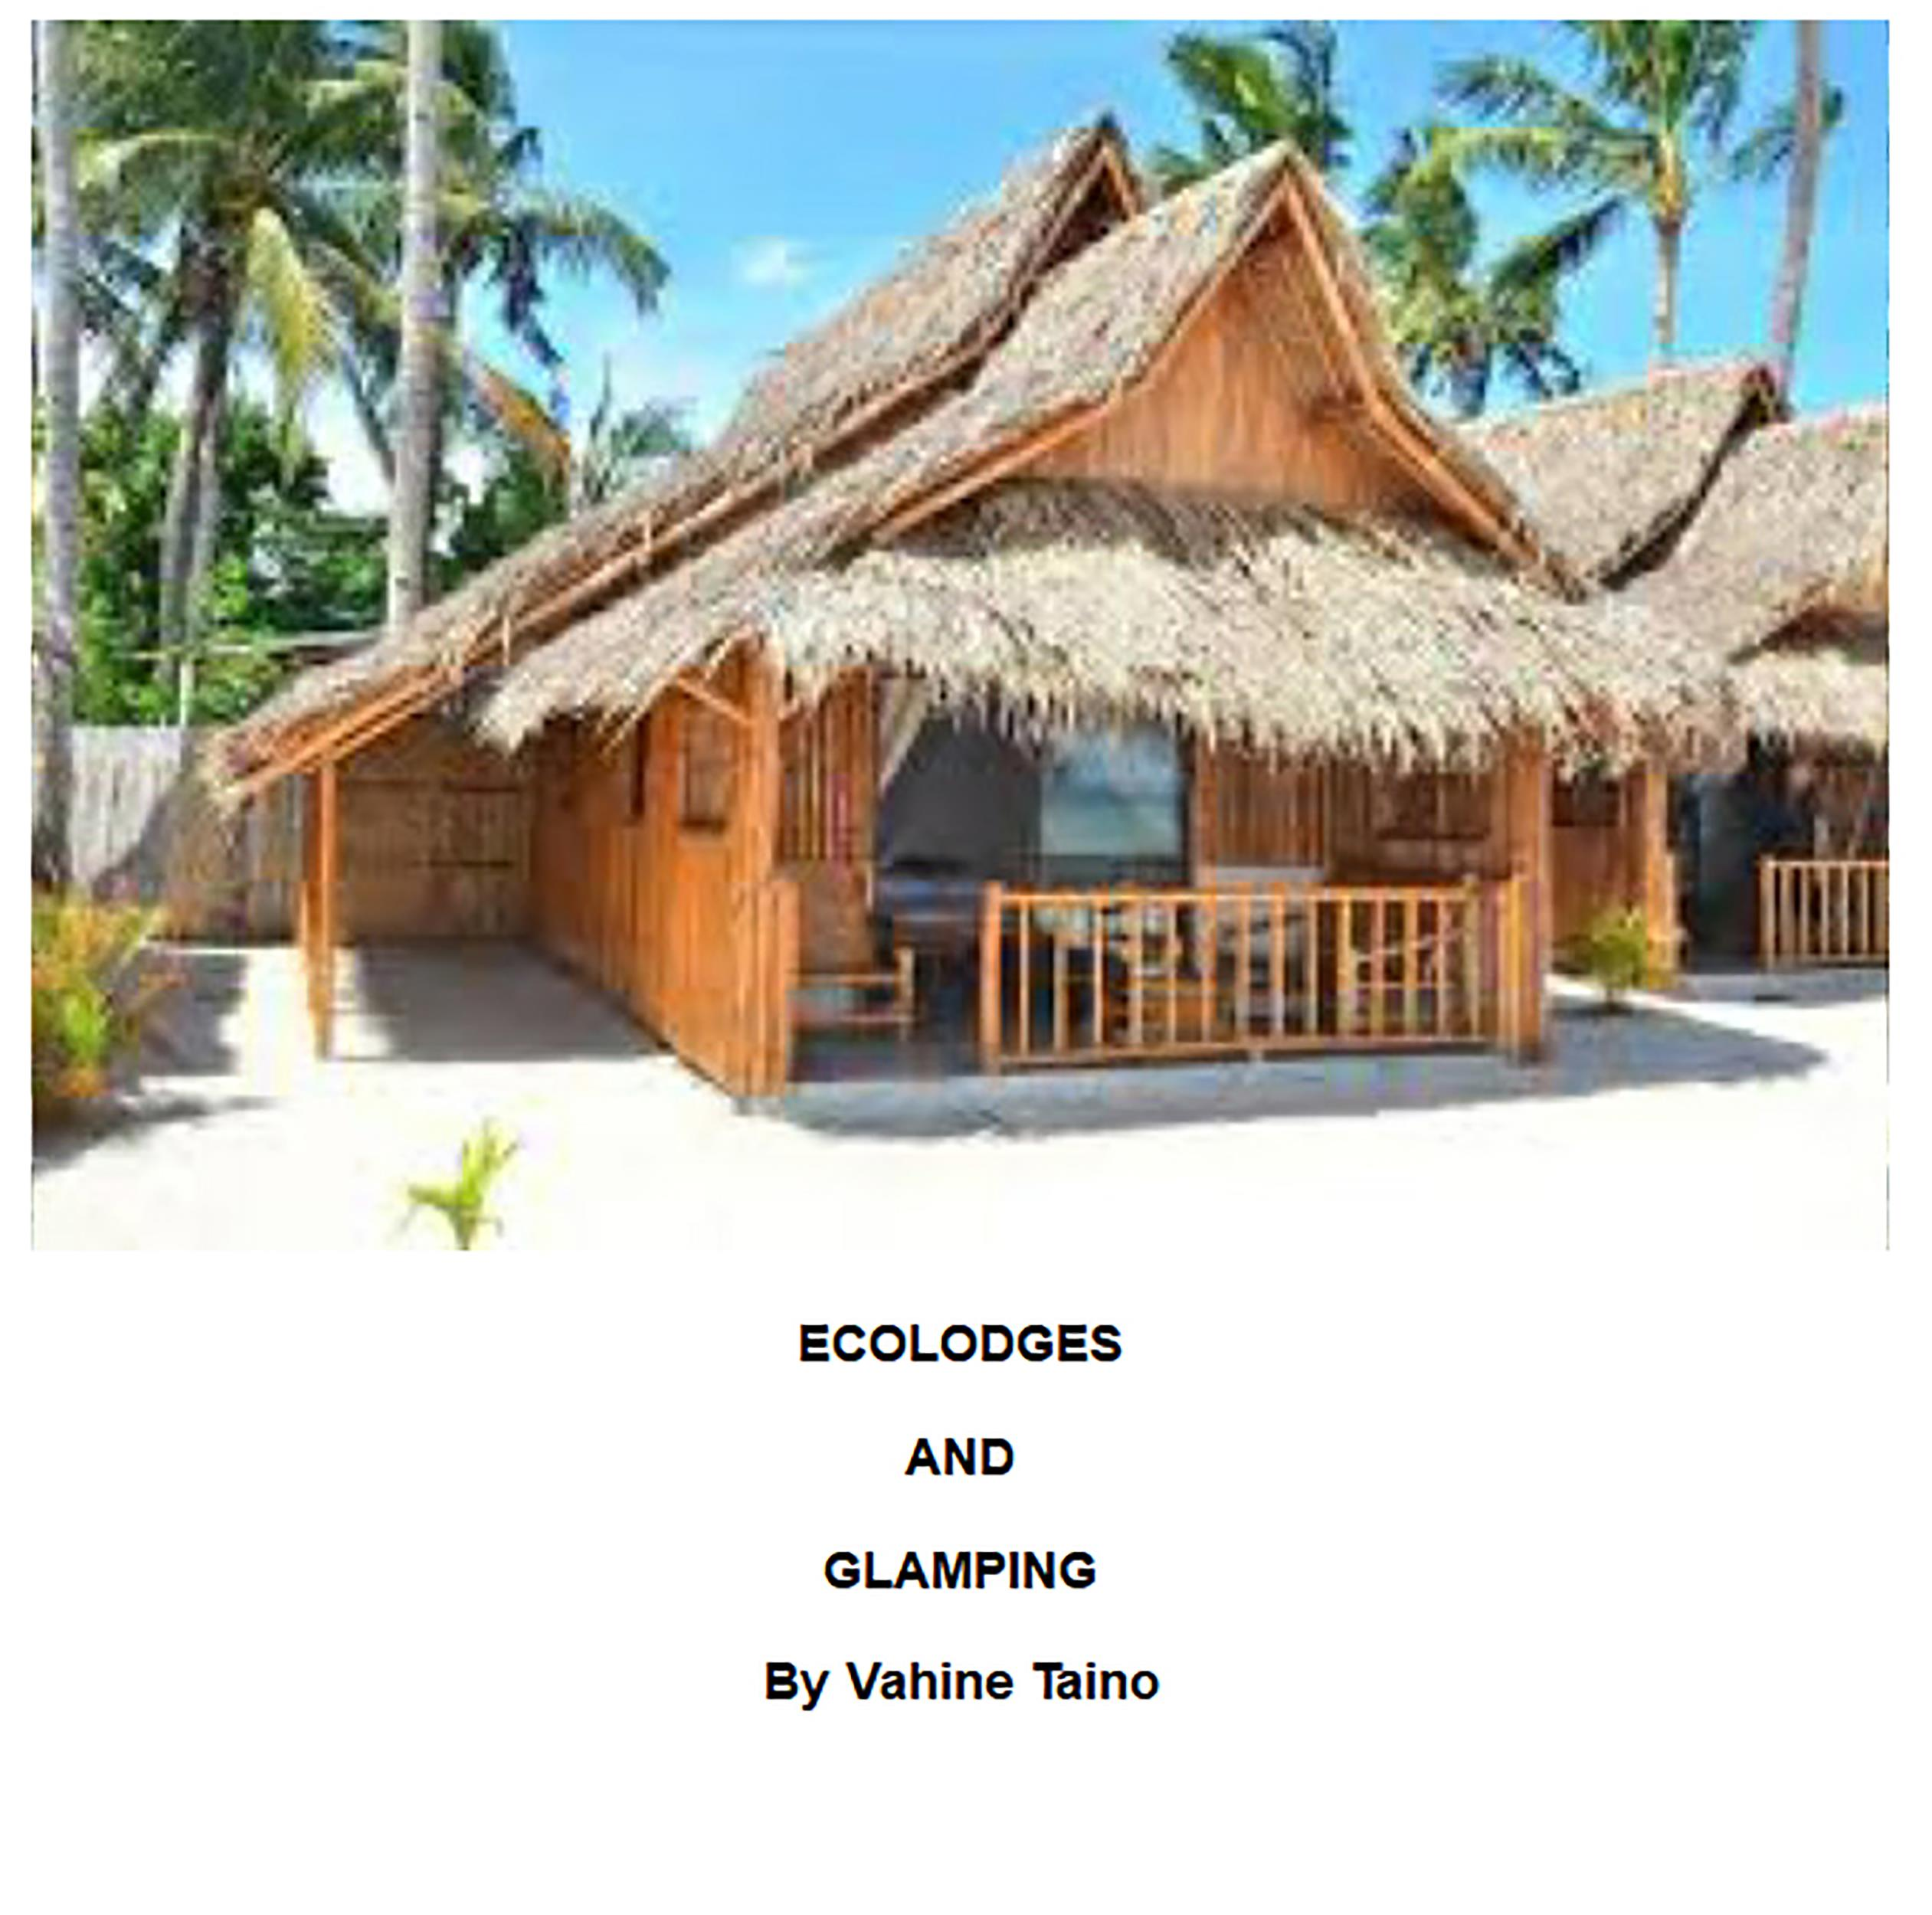 Ecolodges and Glamping